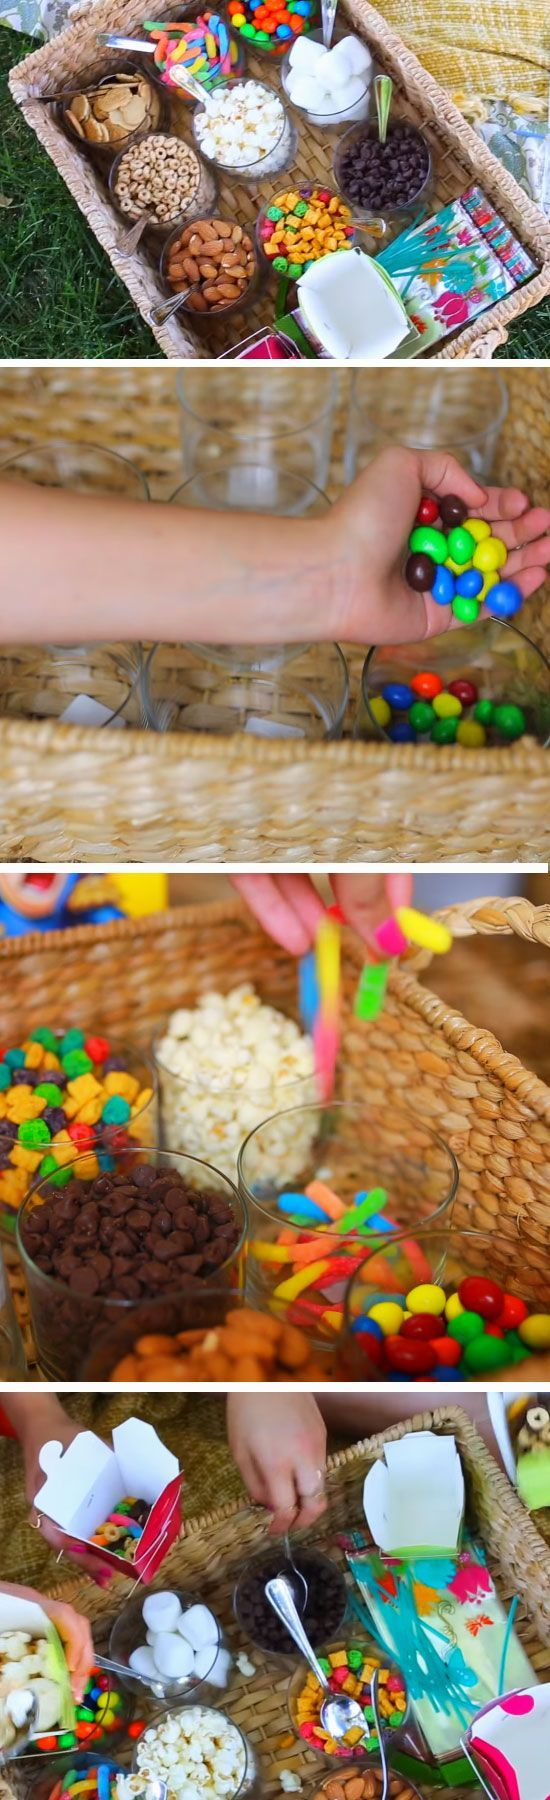 Easy DIY Movie Night Food Ideas at Home with the Kids